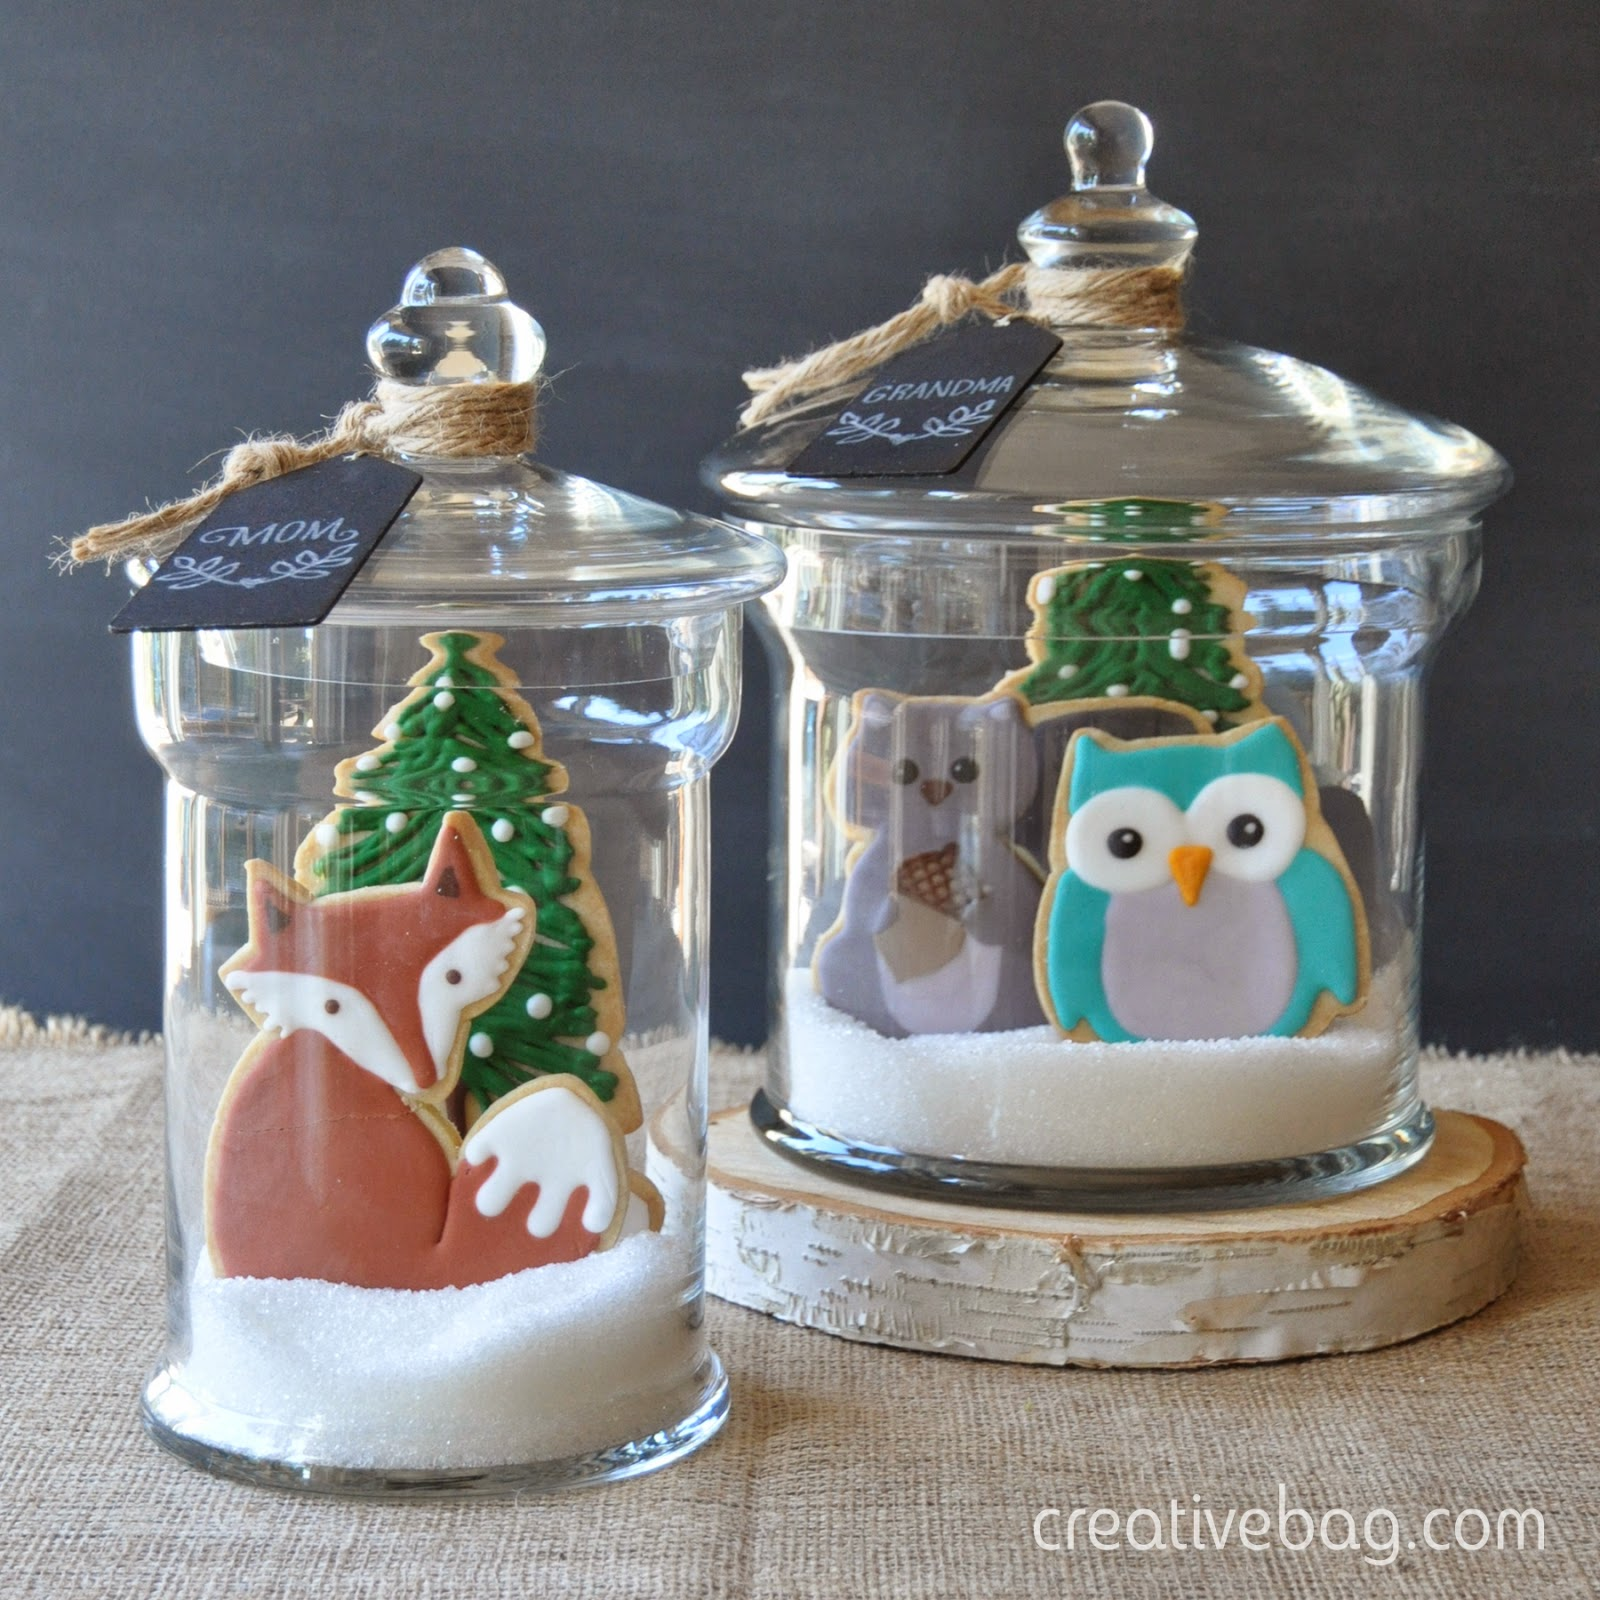 custom made cookies packaged in glass containers for holiday gift giving | creativebag.com